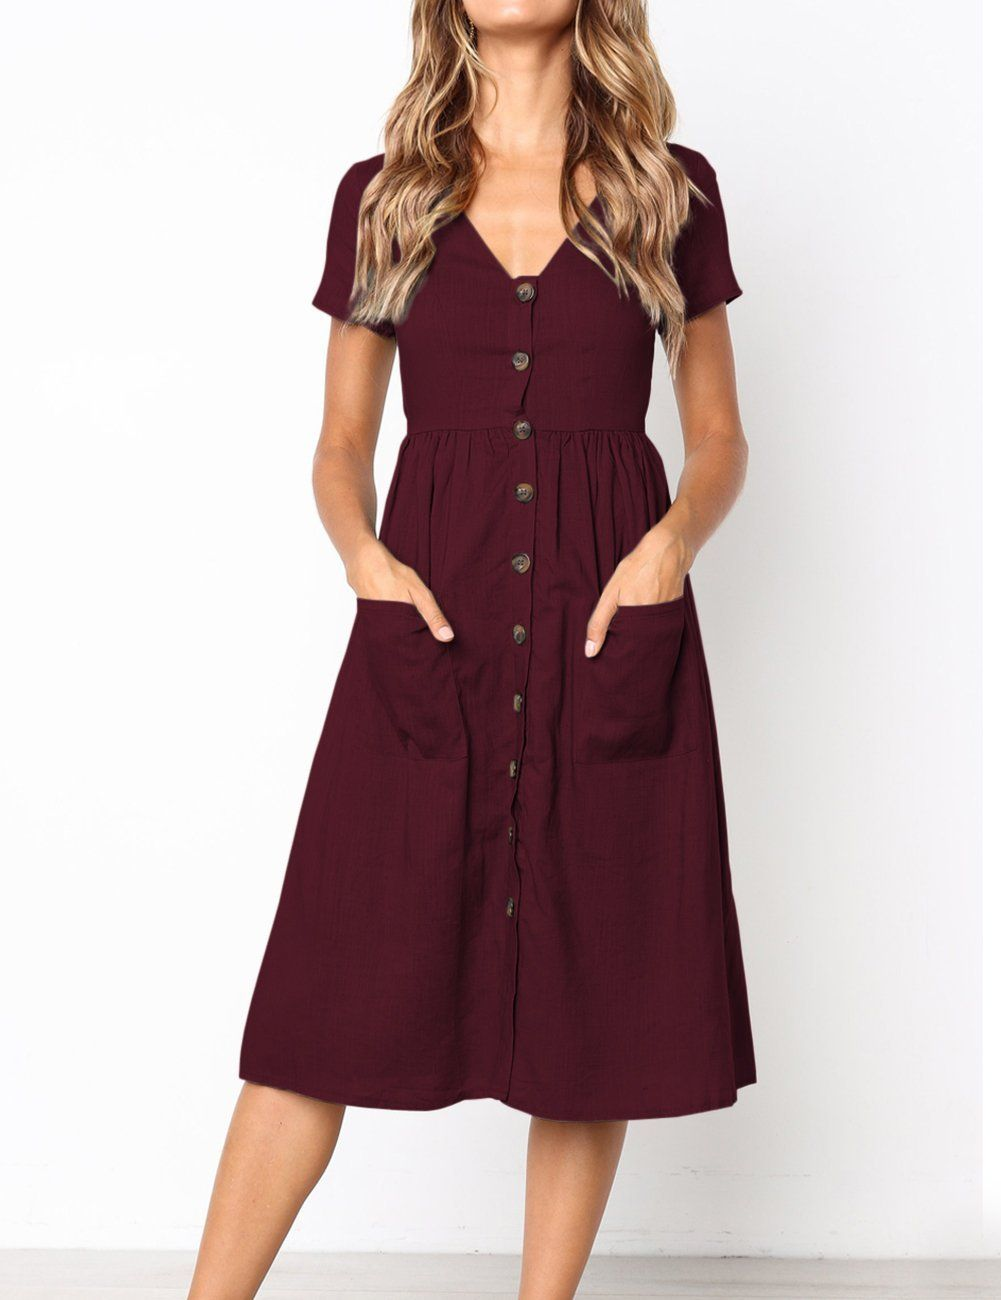 a021a23b1ae MEROKEETY Women s Summer Short Sleeve V Neck Button Down Swing Midi Dress  with Pockets at Amazon Women s Clothing store